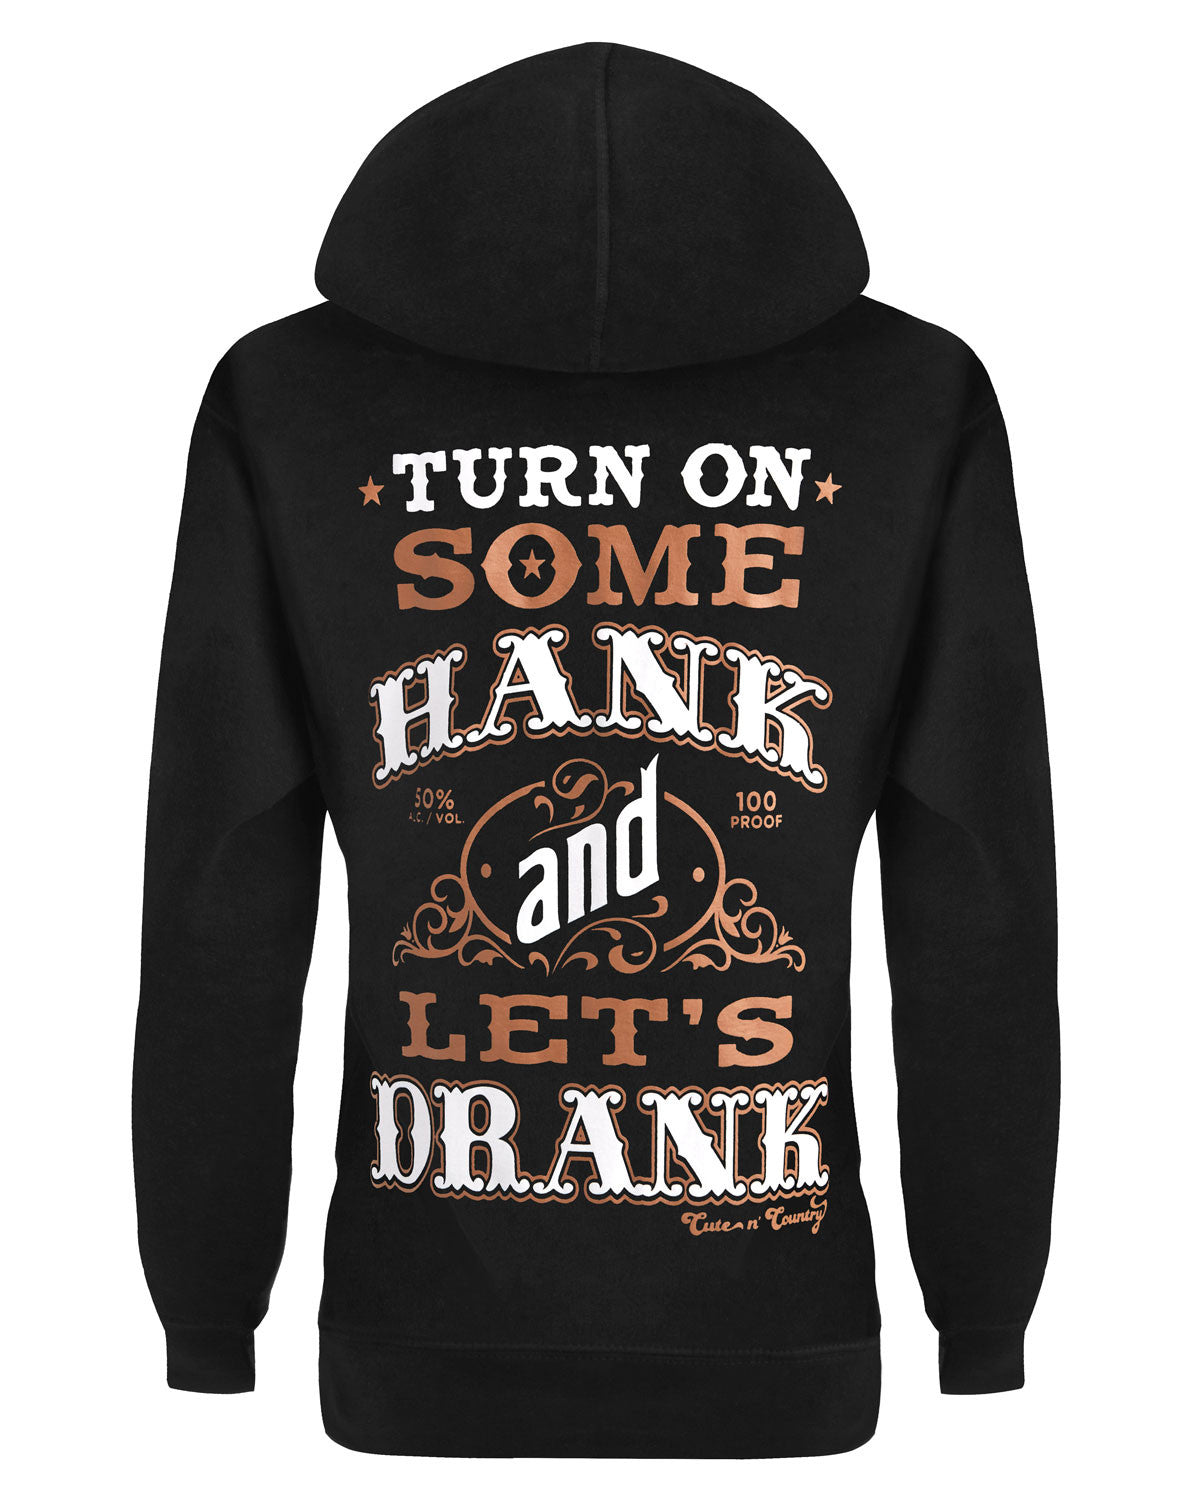 6128fde13 ... Hoodie: Turn On Some Hank and Let's Drank Small / Black, Hoodies - Cute  ...